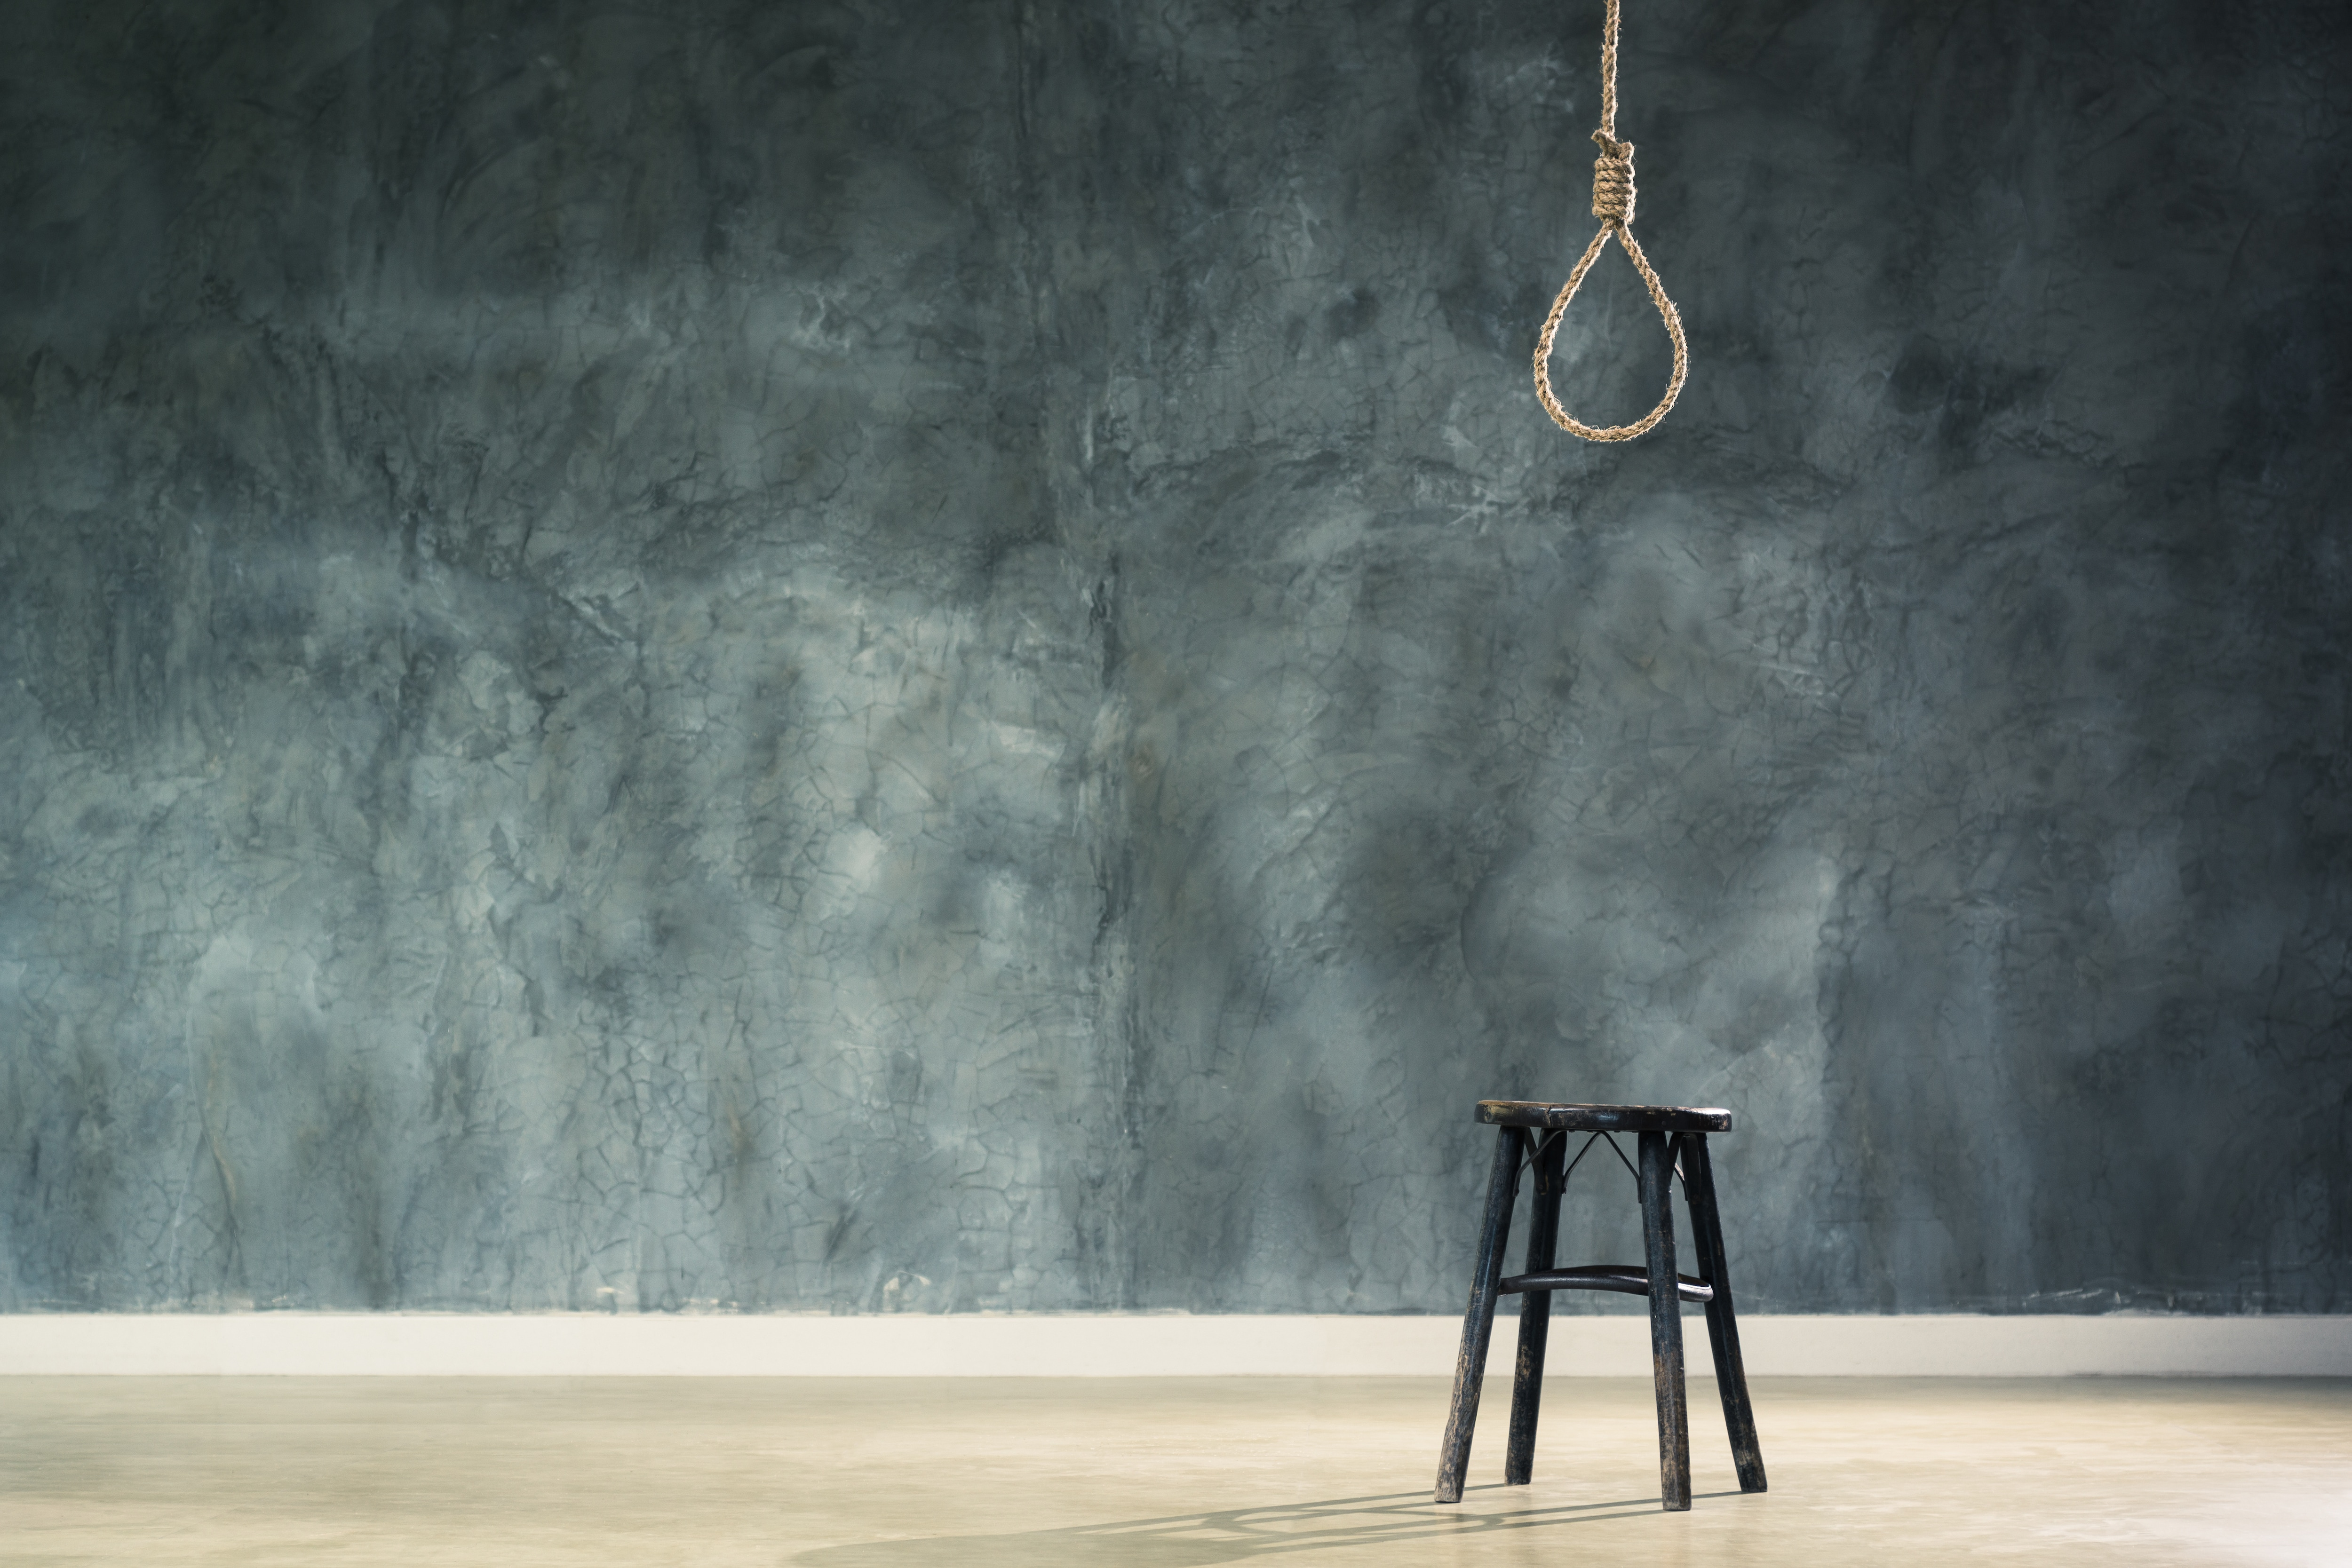 Long Island teachers place on leave for placing noose images in classroom